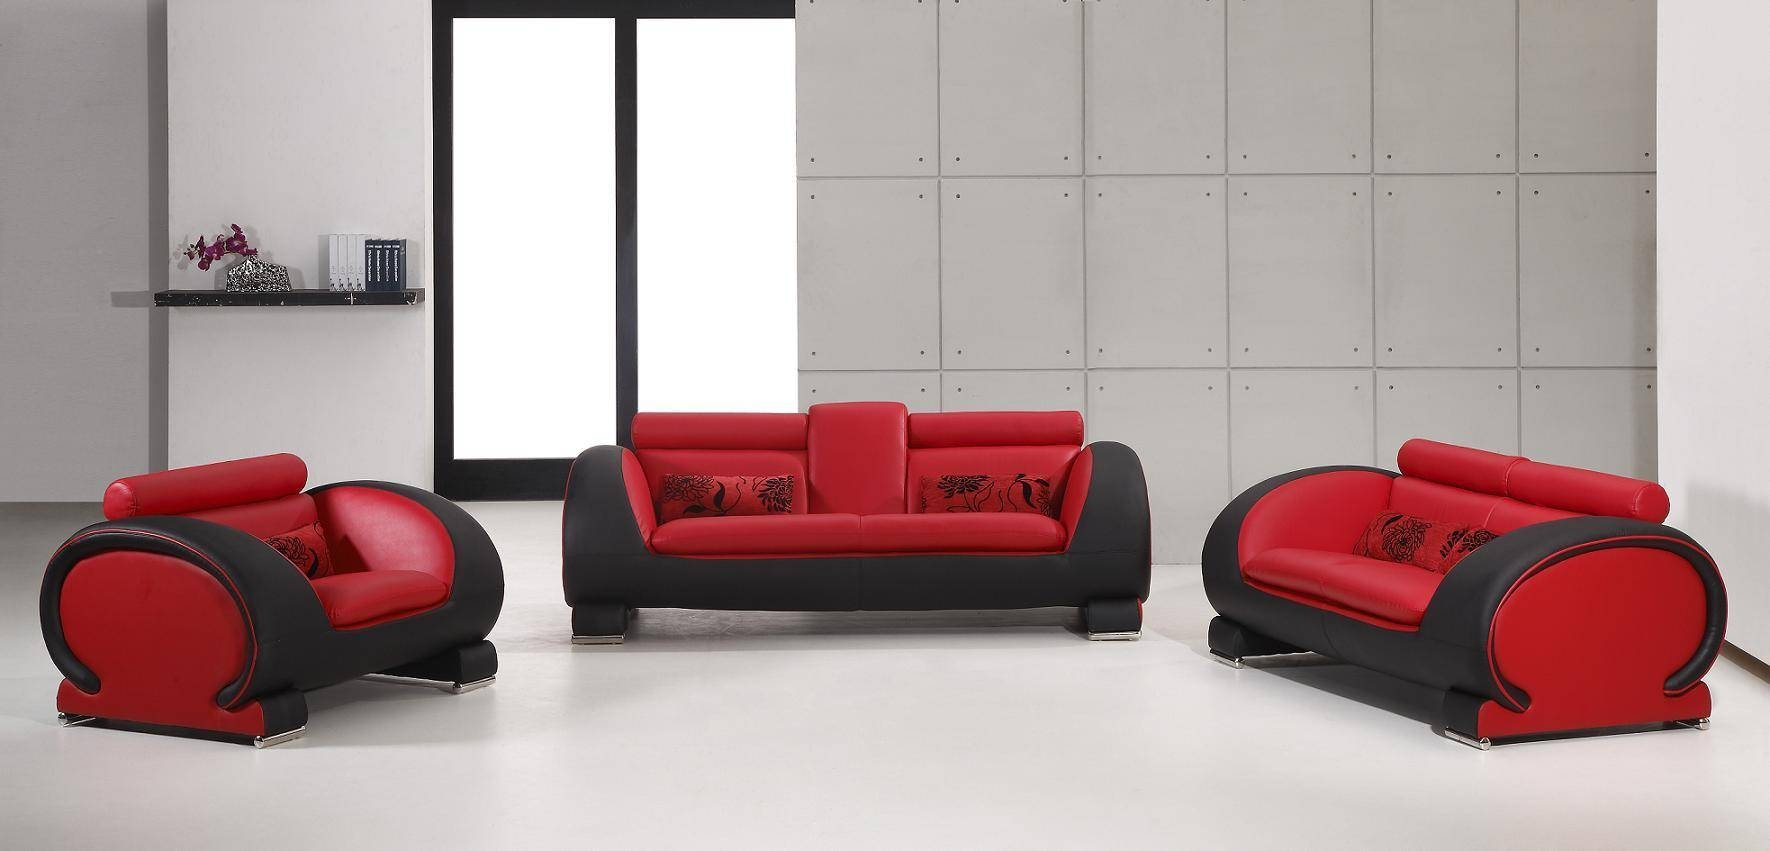 Sofa : Fresh Cheap Cool Sofas Home Design Very Nice Fresh With pertaining to Cool Cheap Sofas (Image 26 of 30)